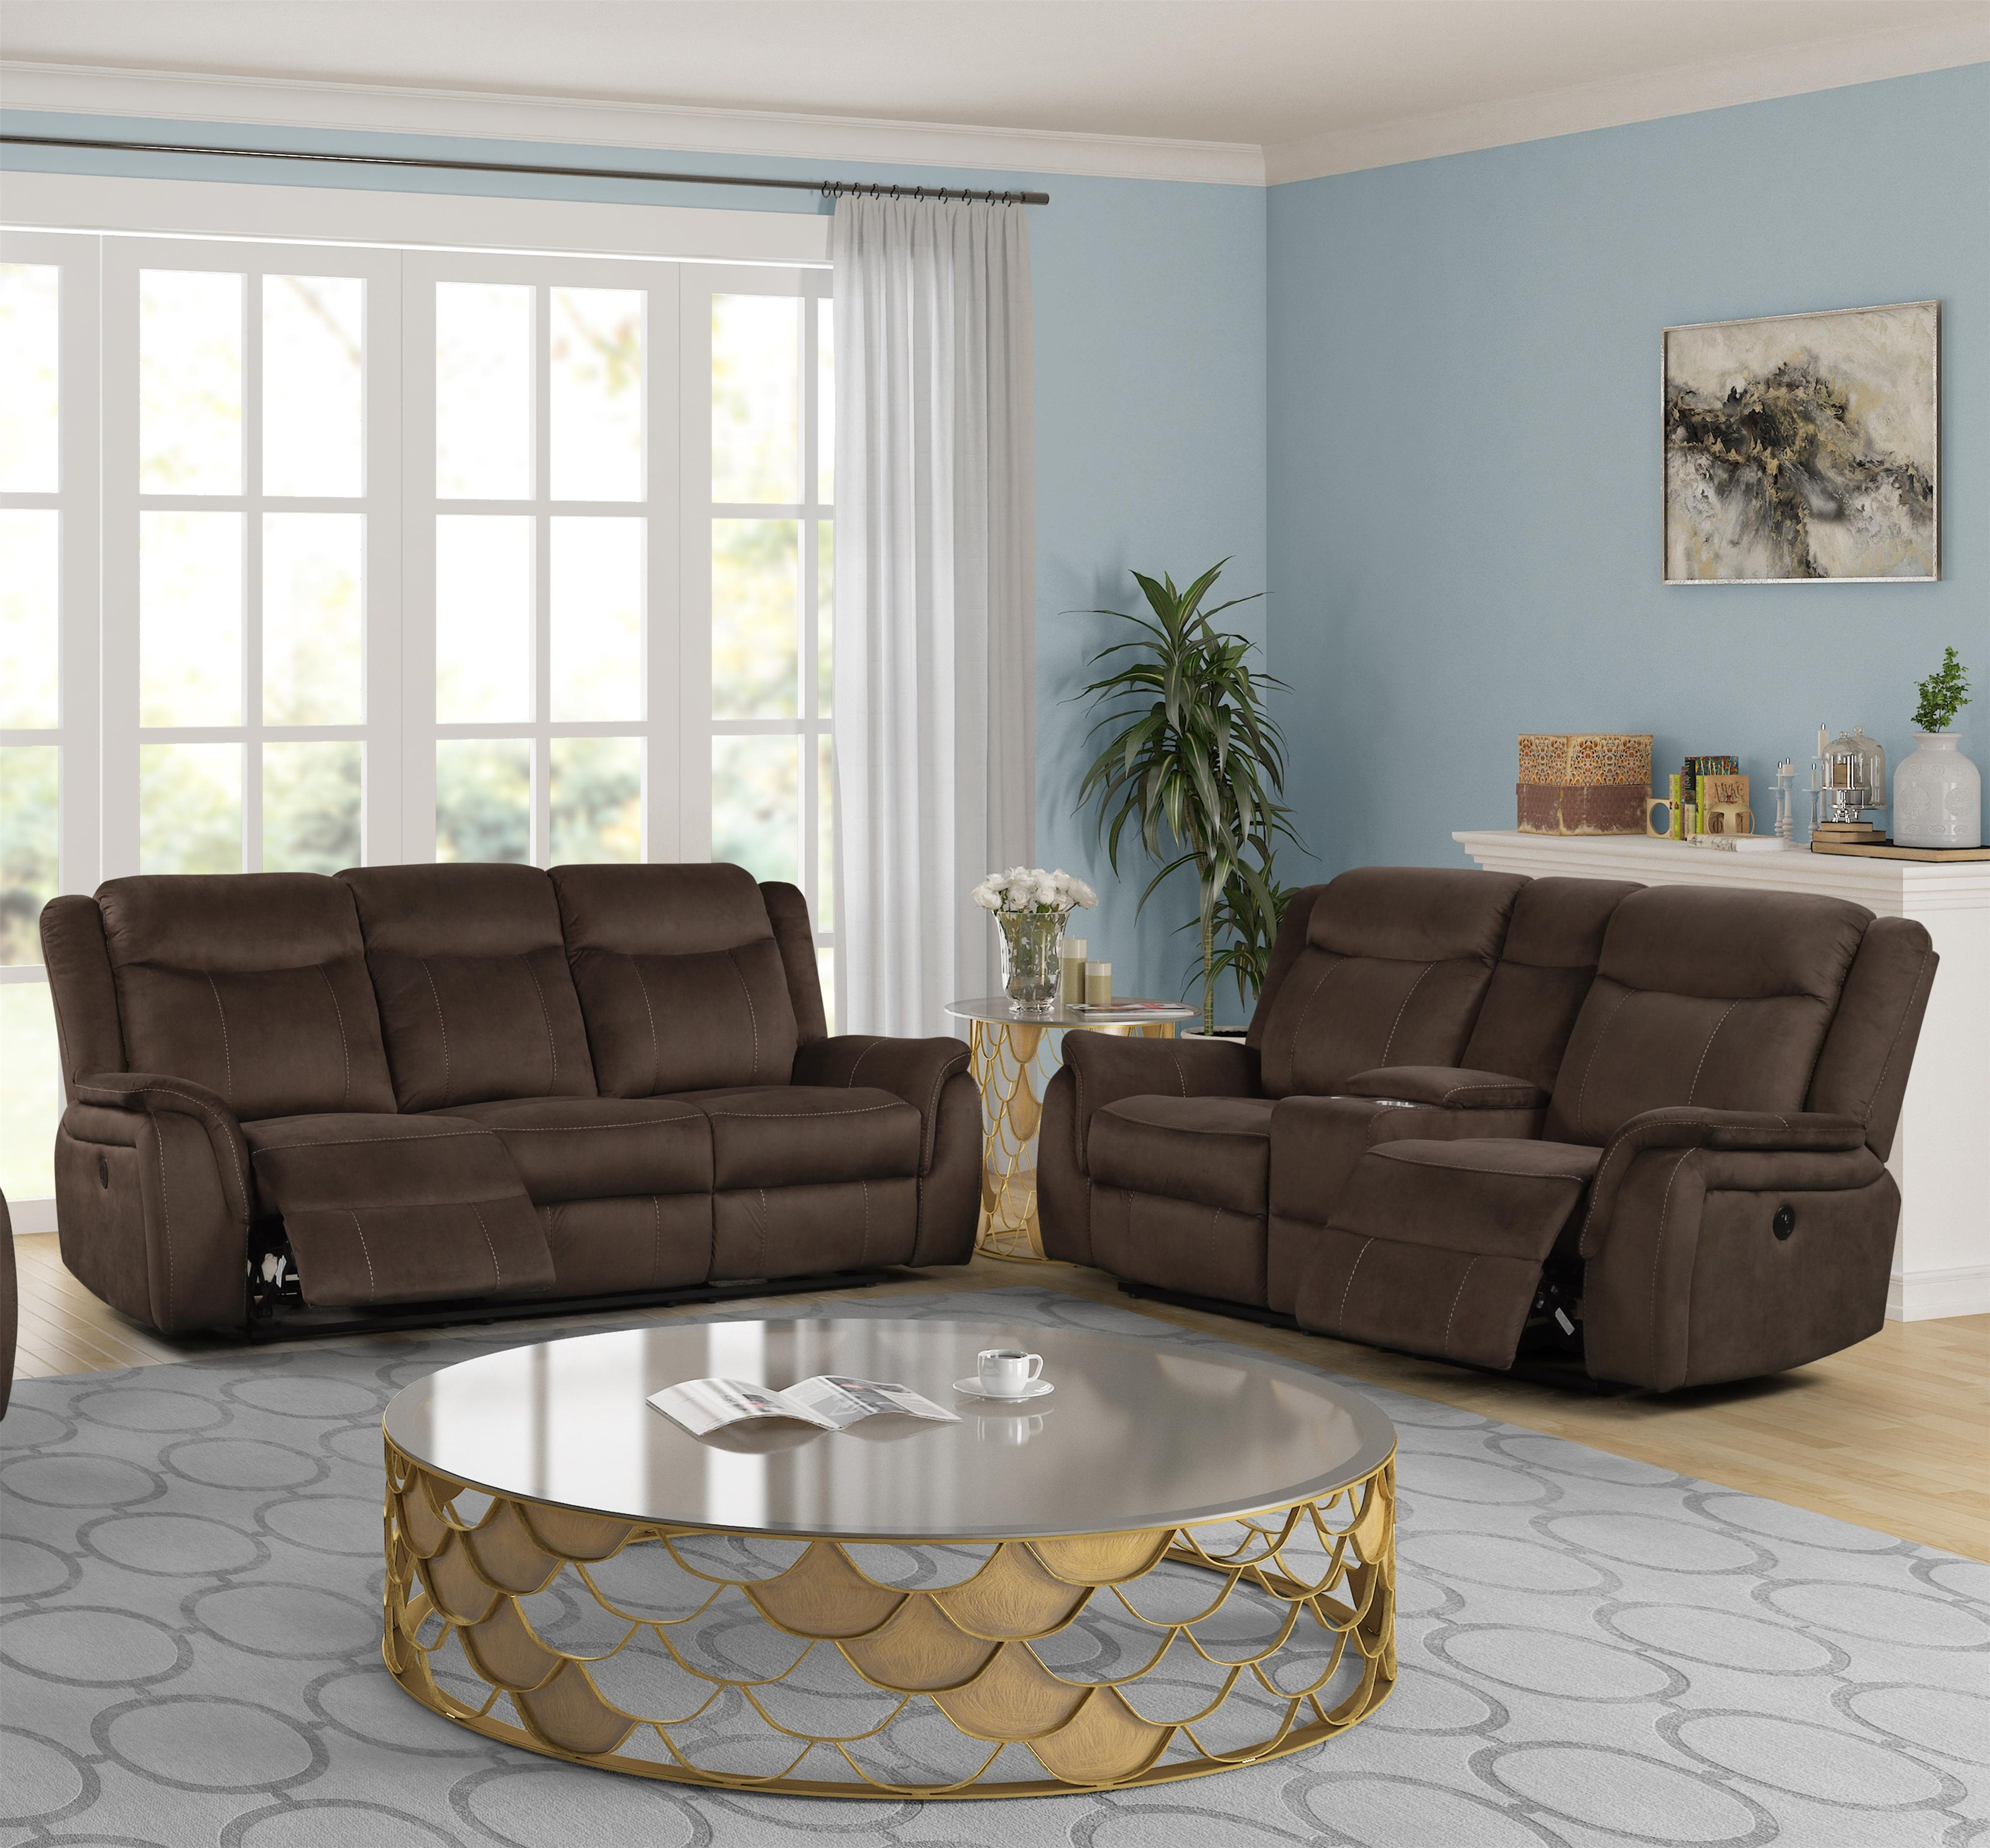 New Classic Cavett Cocoa U9525 30 25 Reclining Sofa Loveseat With Console Living Room Group Sam Levitz Furniture Reclining Living Room Groups